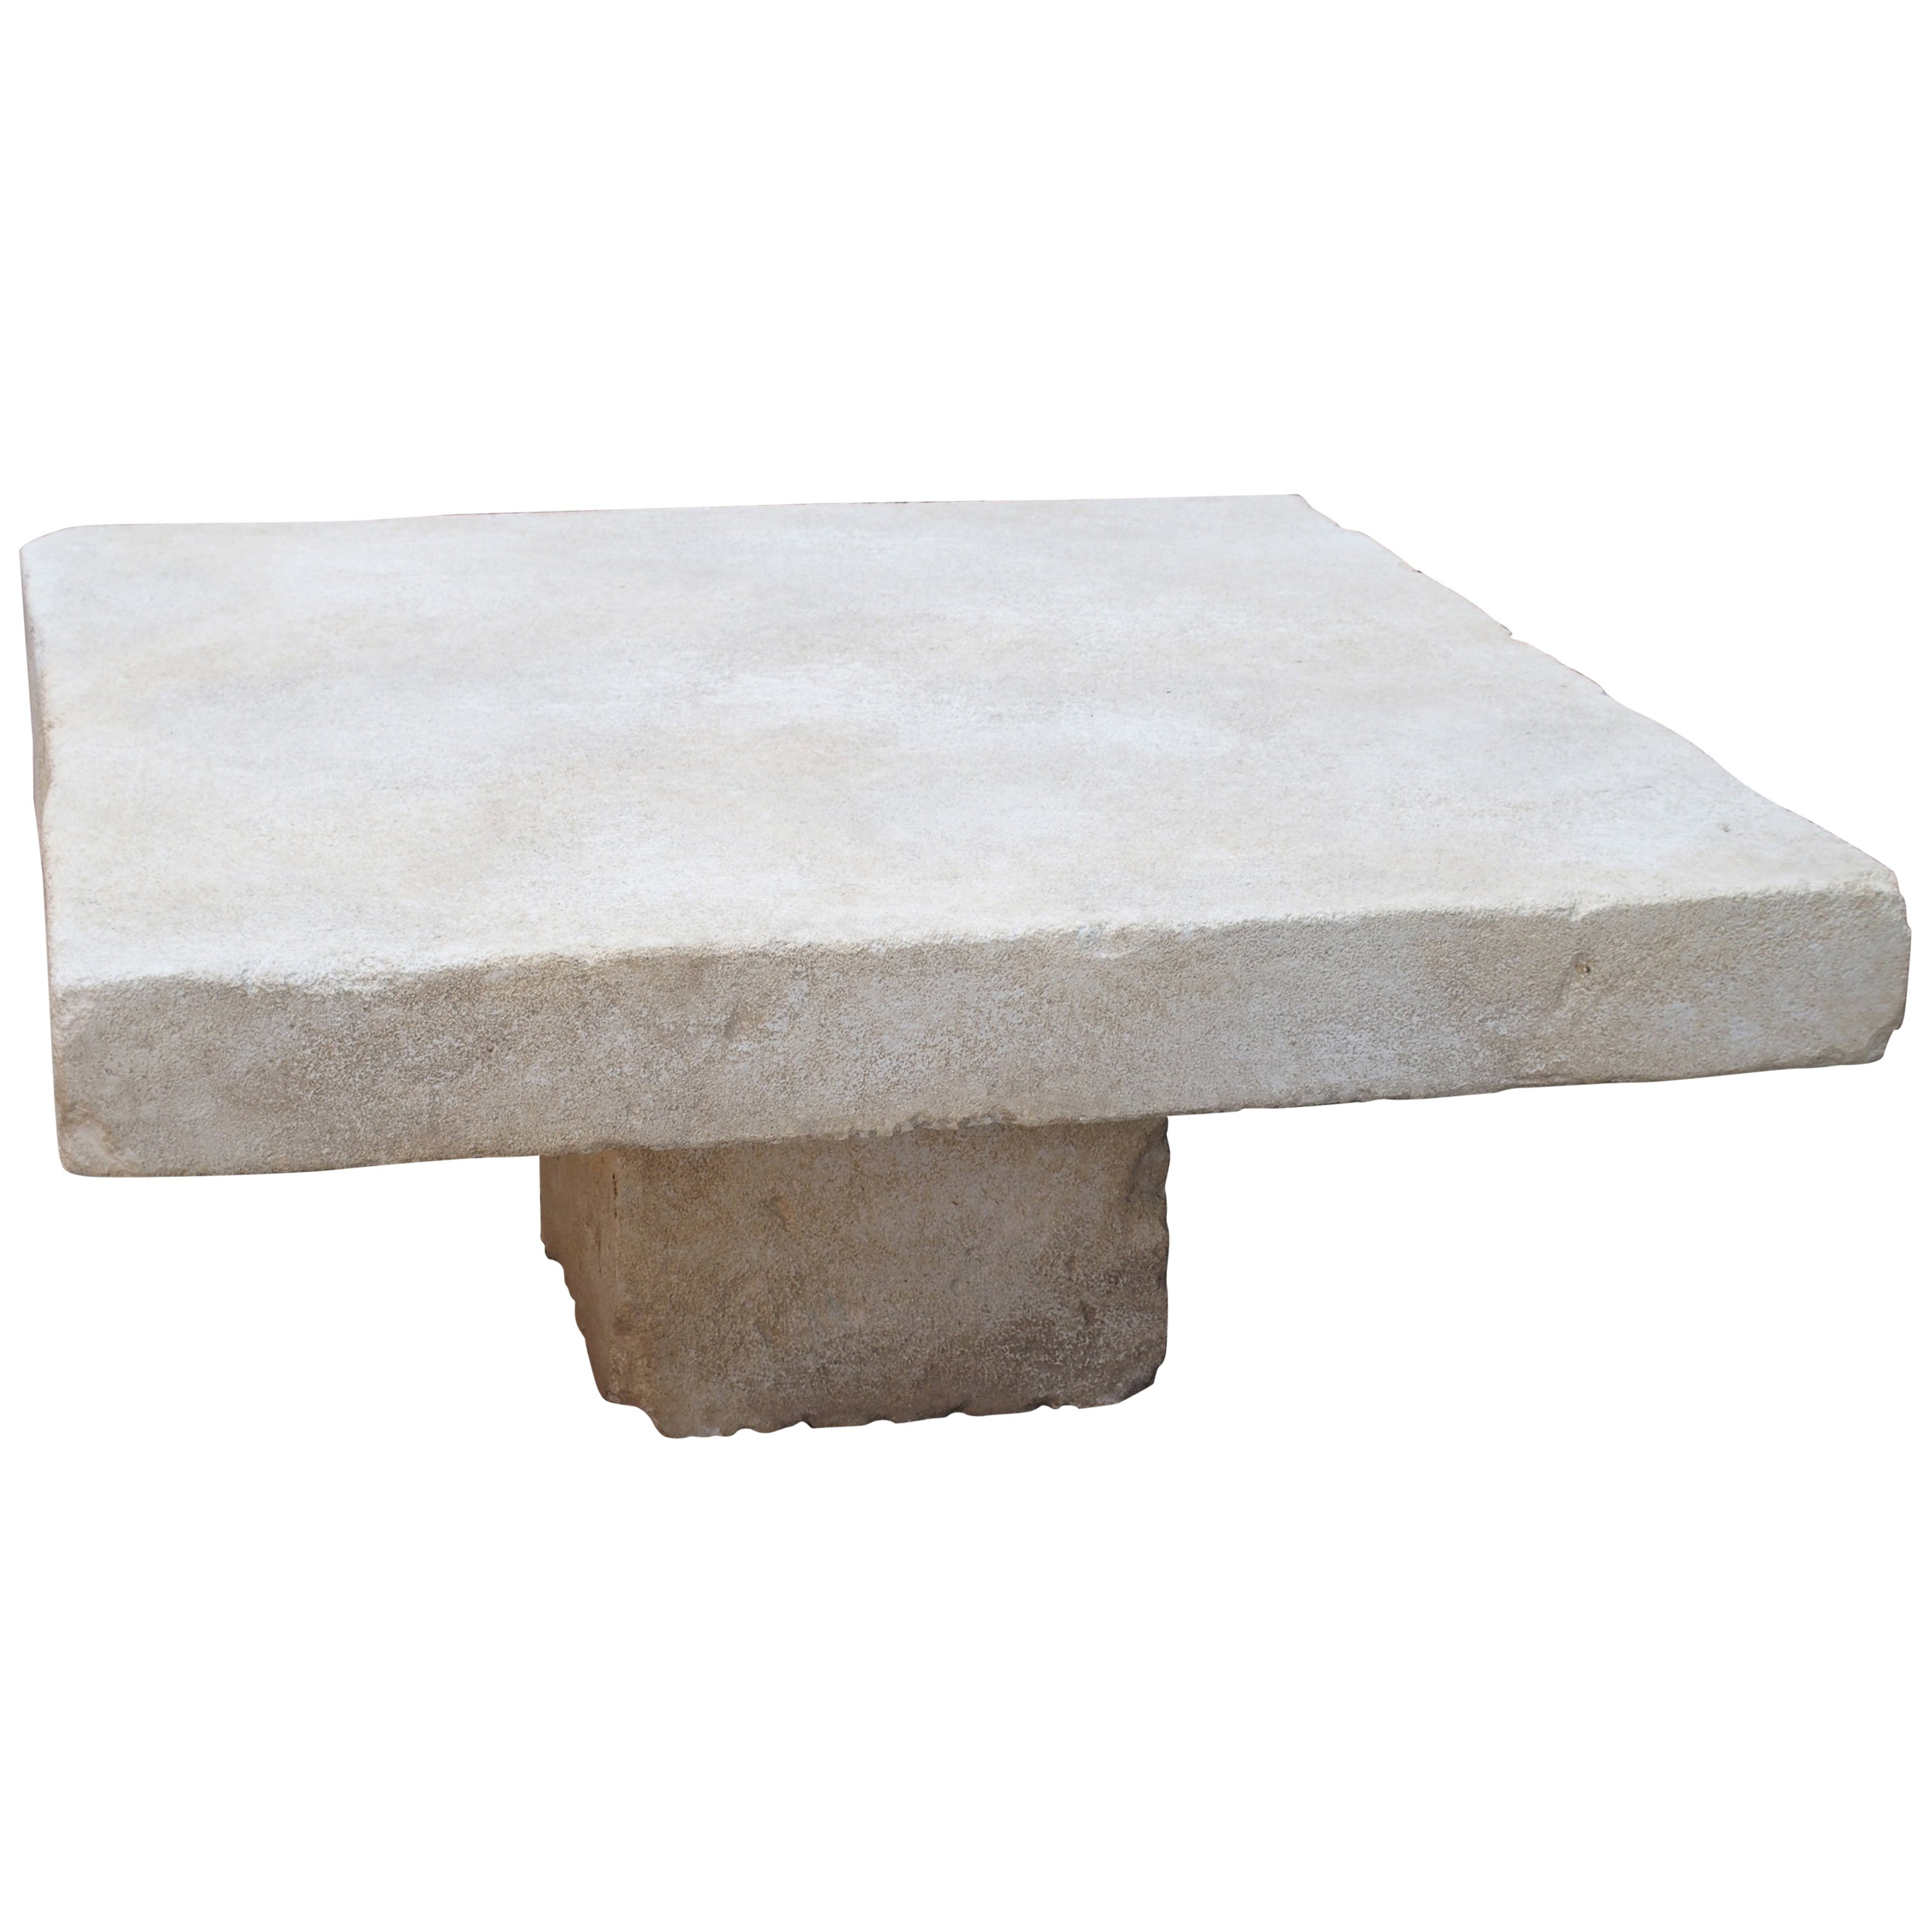 Limestone Coffee Table From The South Of France At 1Stdibs For Recent Rectangular Barbox Coffee Tables (View 7 of 20)